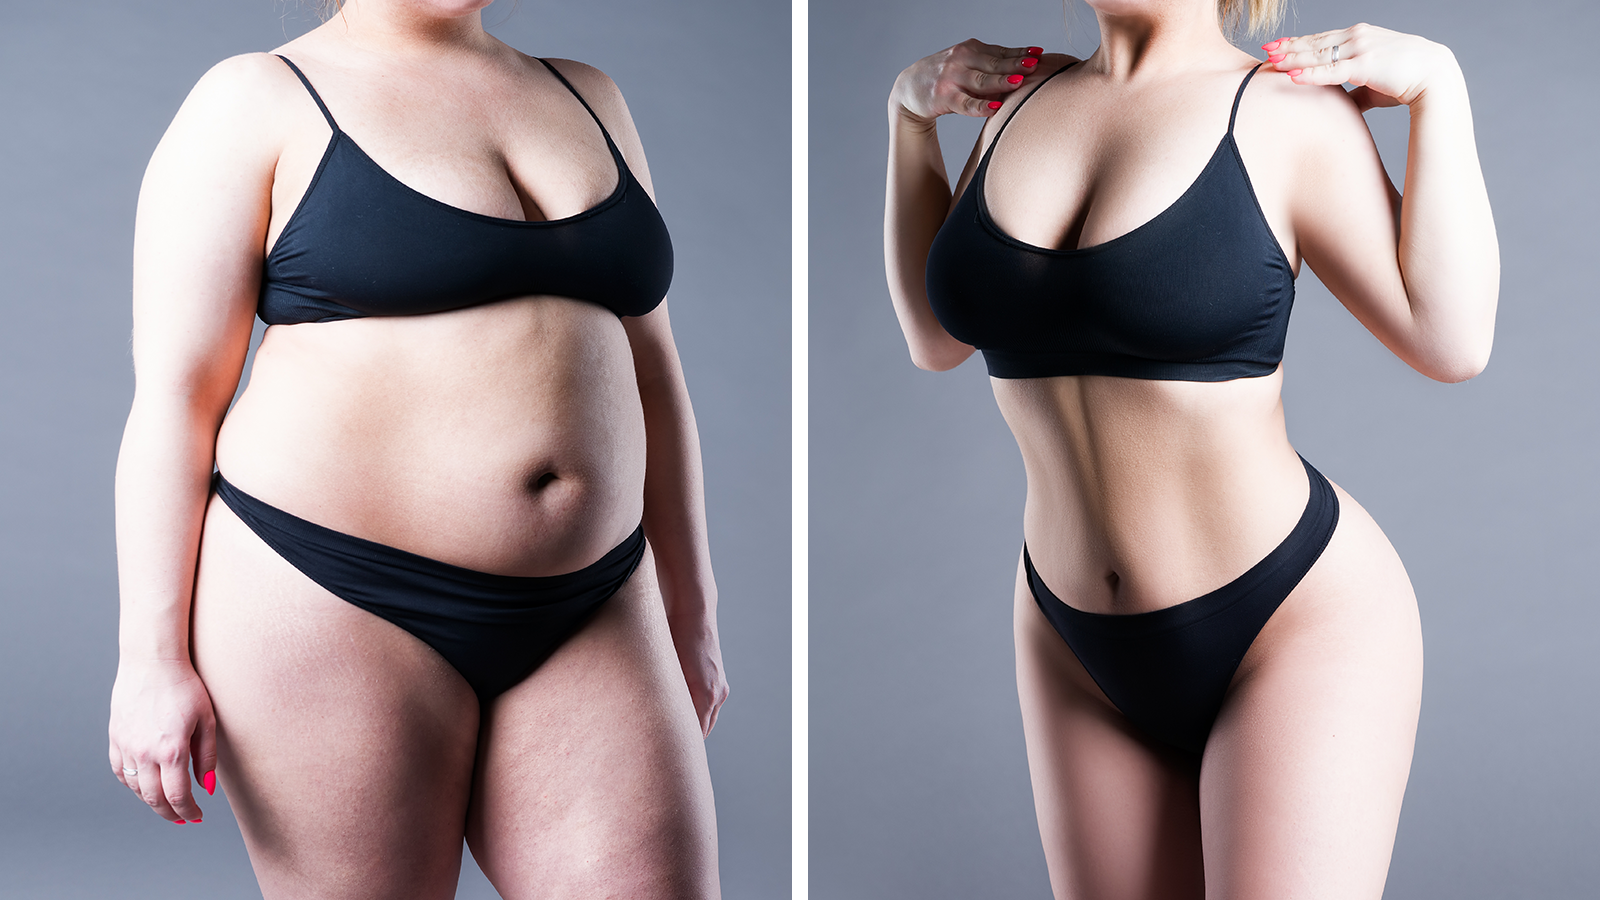 12 Foods That You Should Start Eating To Get Rid Of Belly Fat According To A Nutritionist